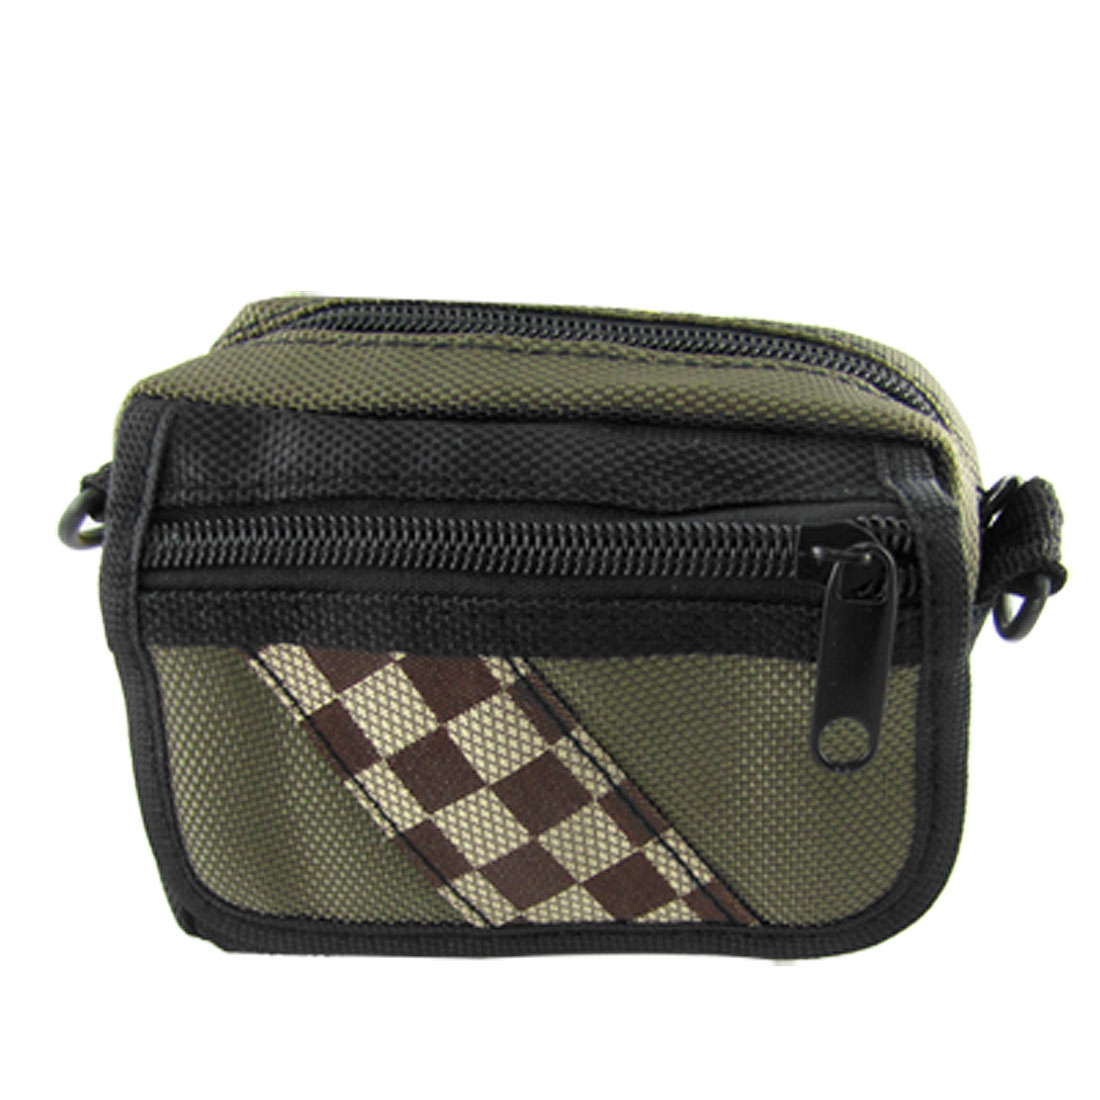 Digital Camera 3 Pocket Nylon Pouch Shoulder Carrying Bag